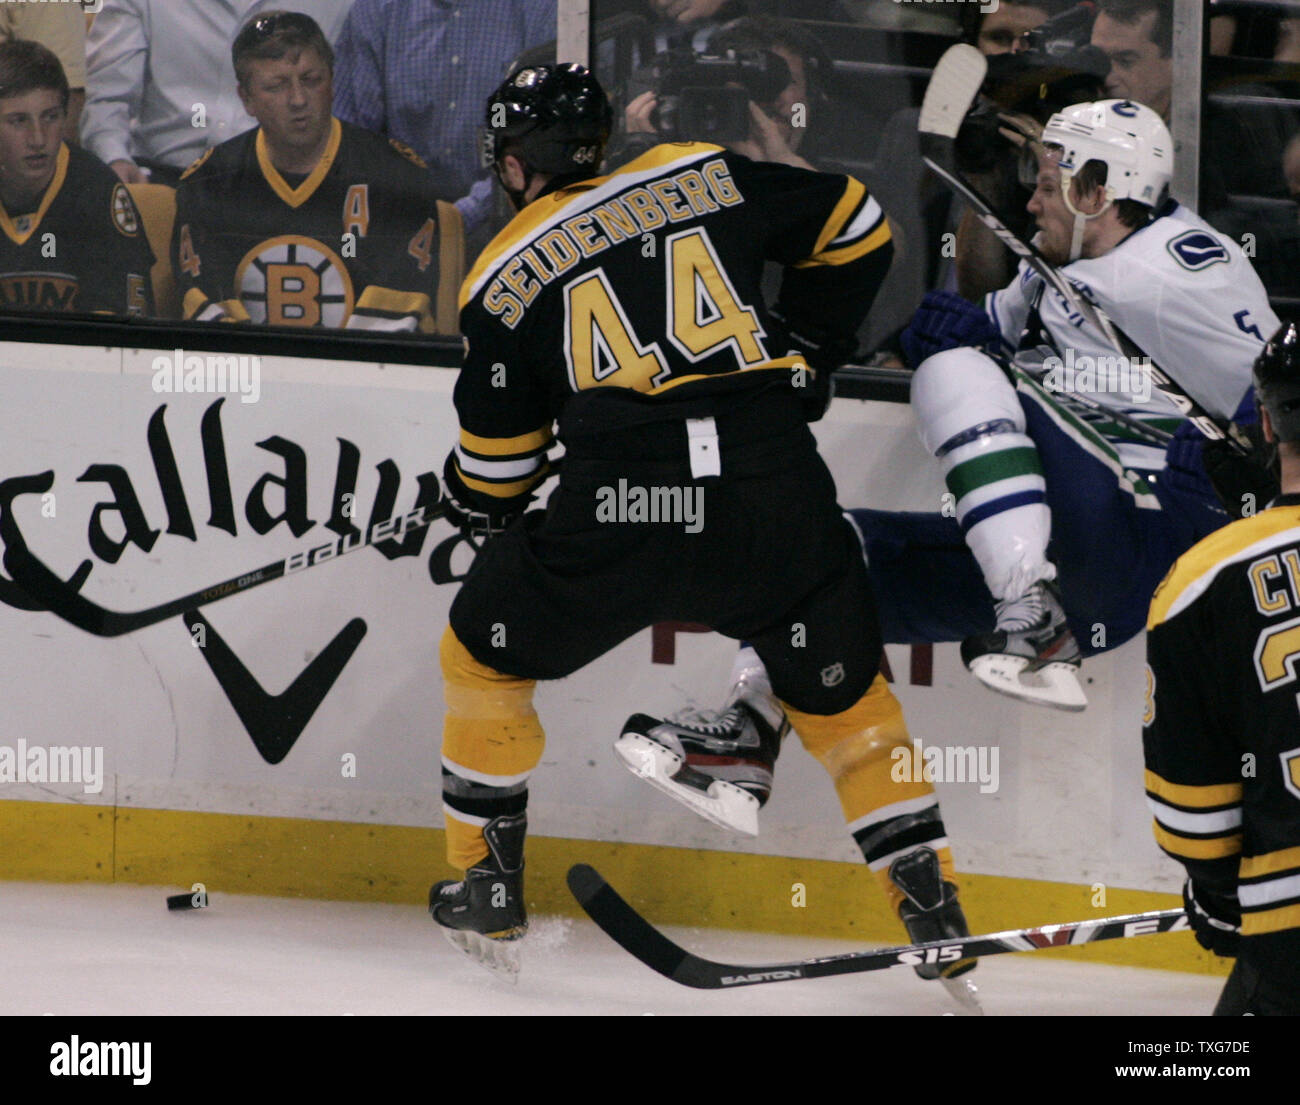 brand new 7a67a 2d62f Boston Bruins defenseman Dennis Seidenberg (44) checks ...